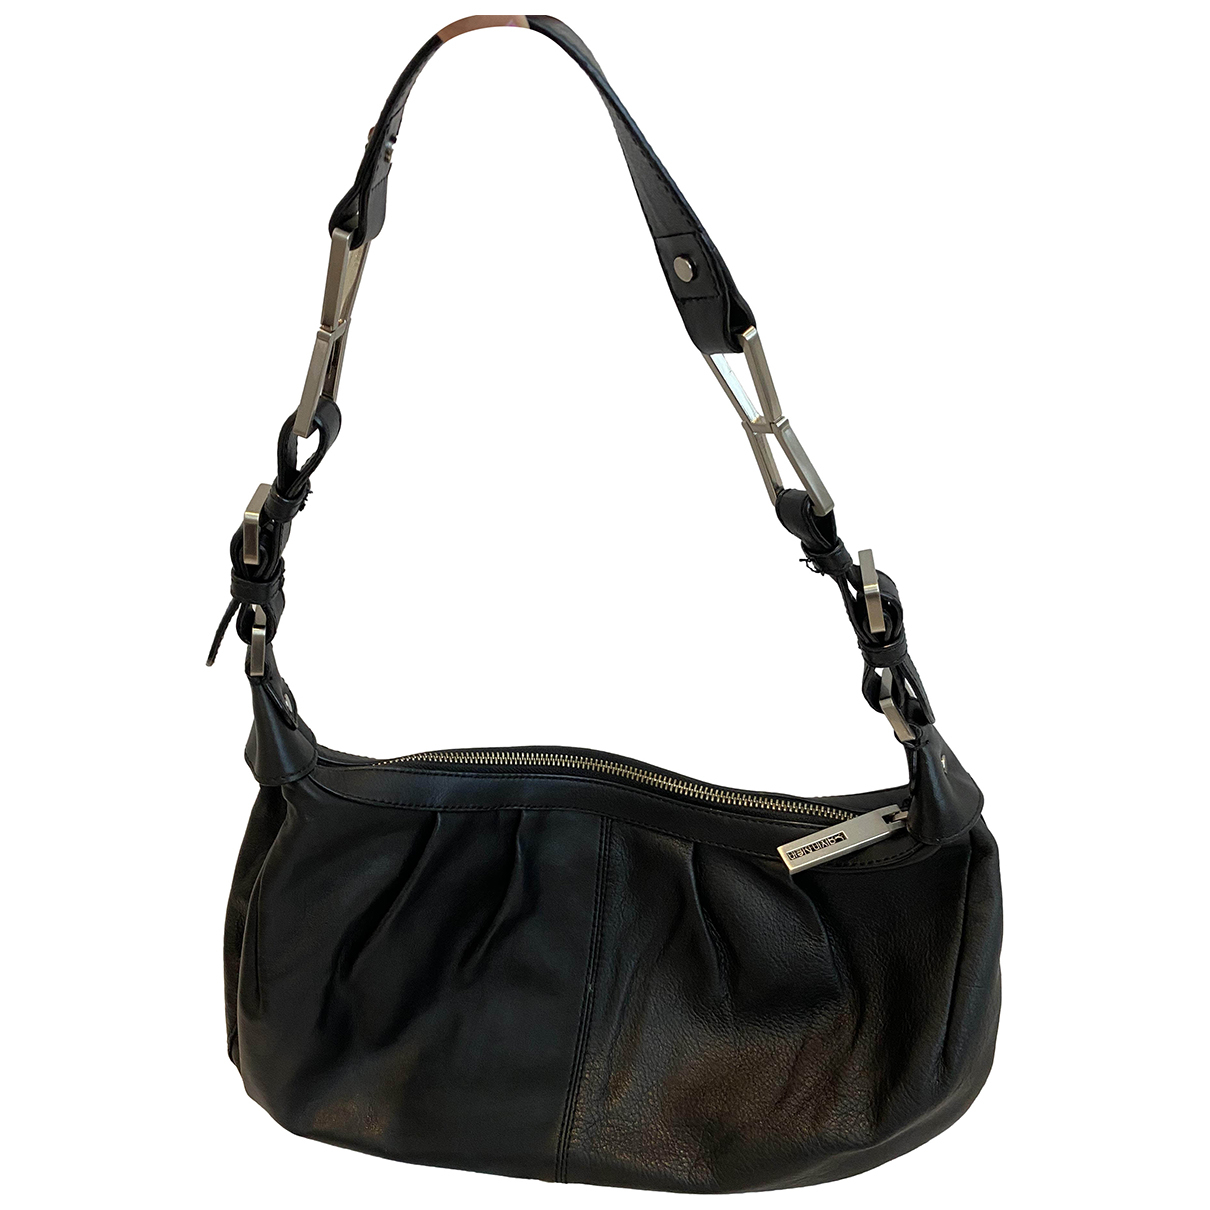 Calvin Klein \N Black Leather handbag for Women \N